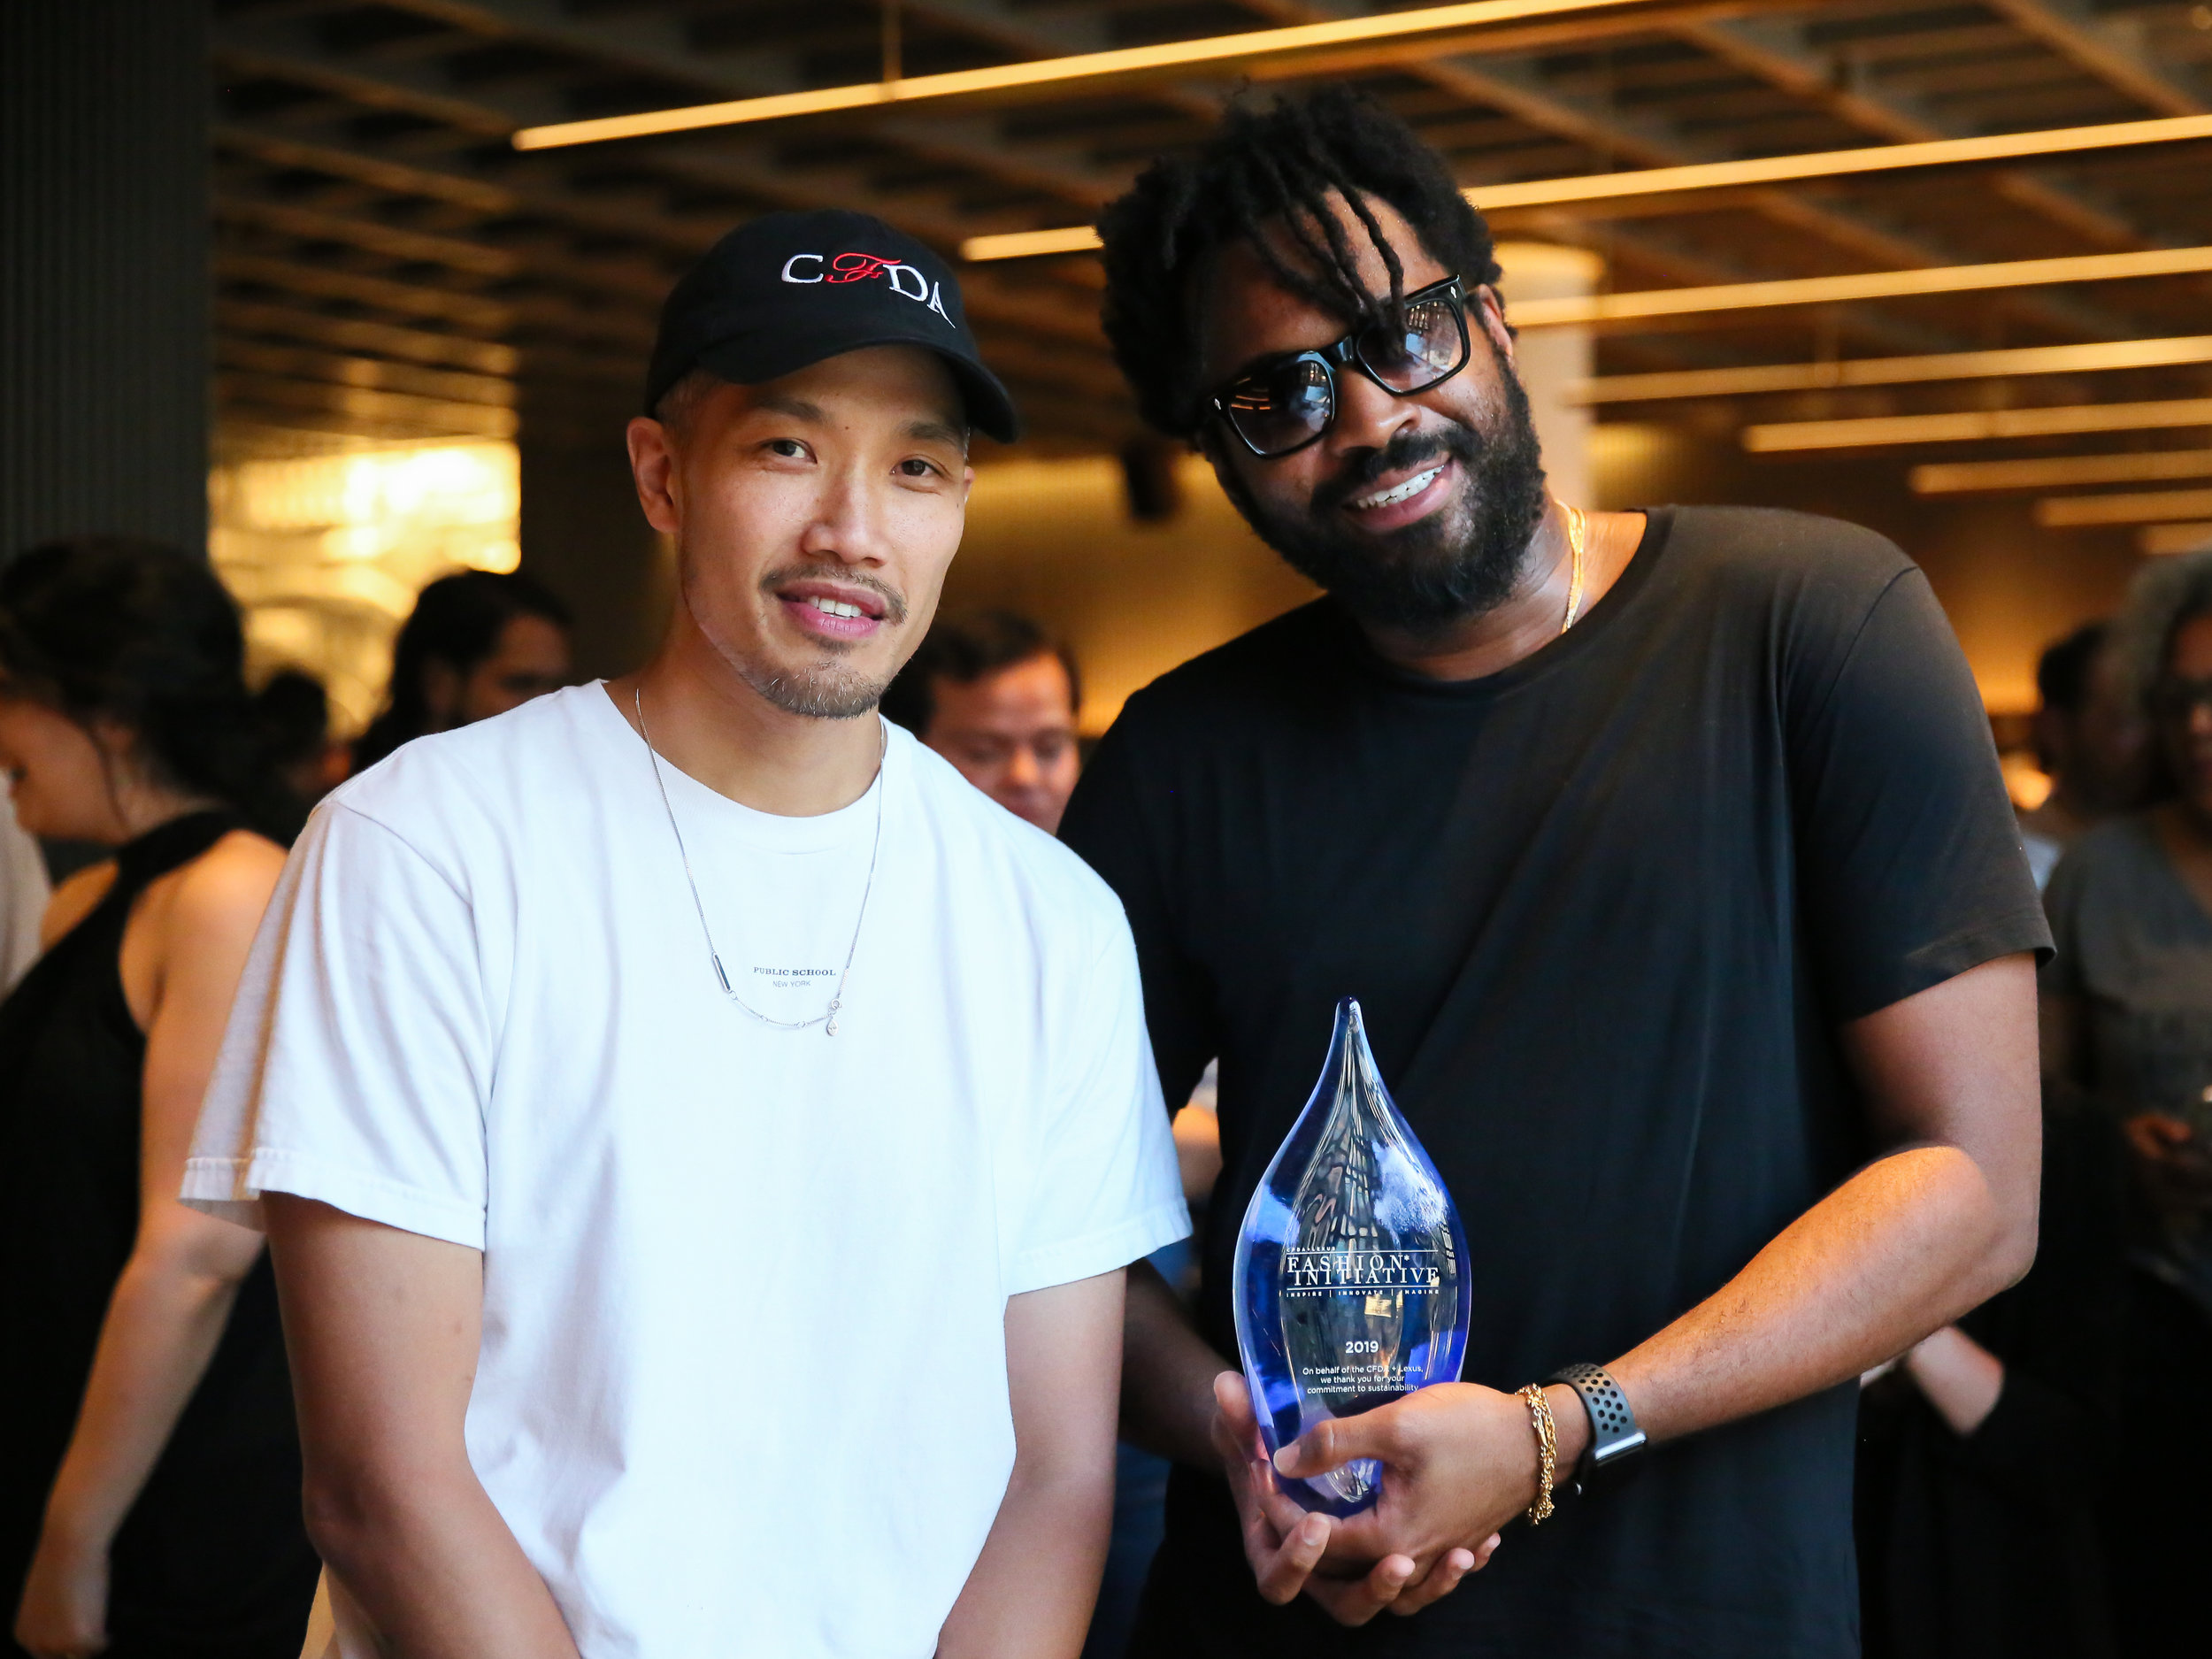 Dao-Yi Chow + Maxwell Osborne, founders of Public School and winners of the 2019 CFDA + Lexus Fashion* Initiative 3.0